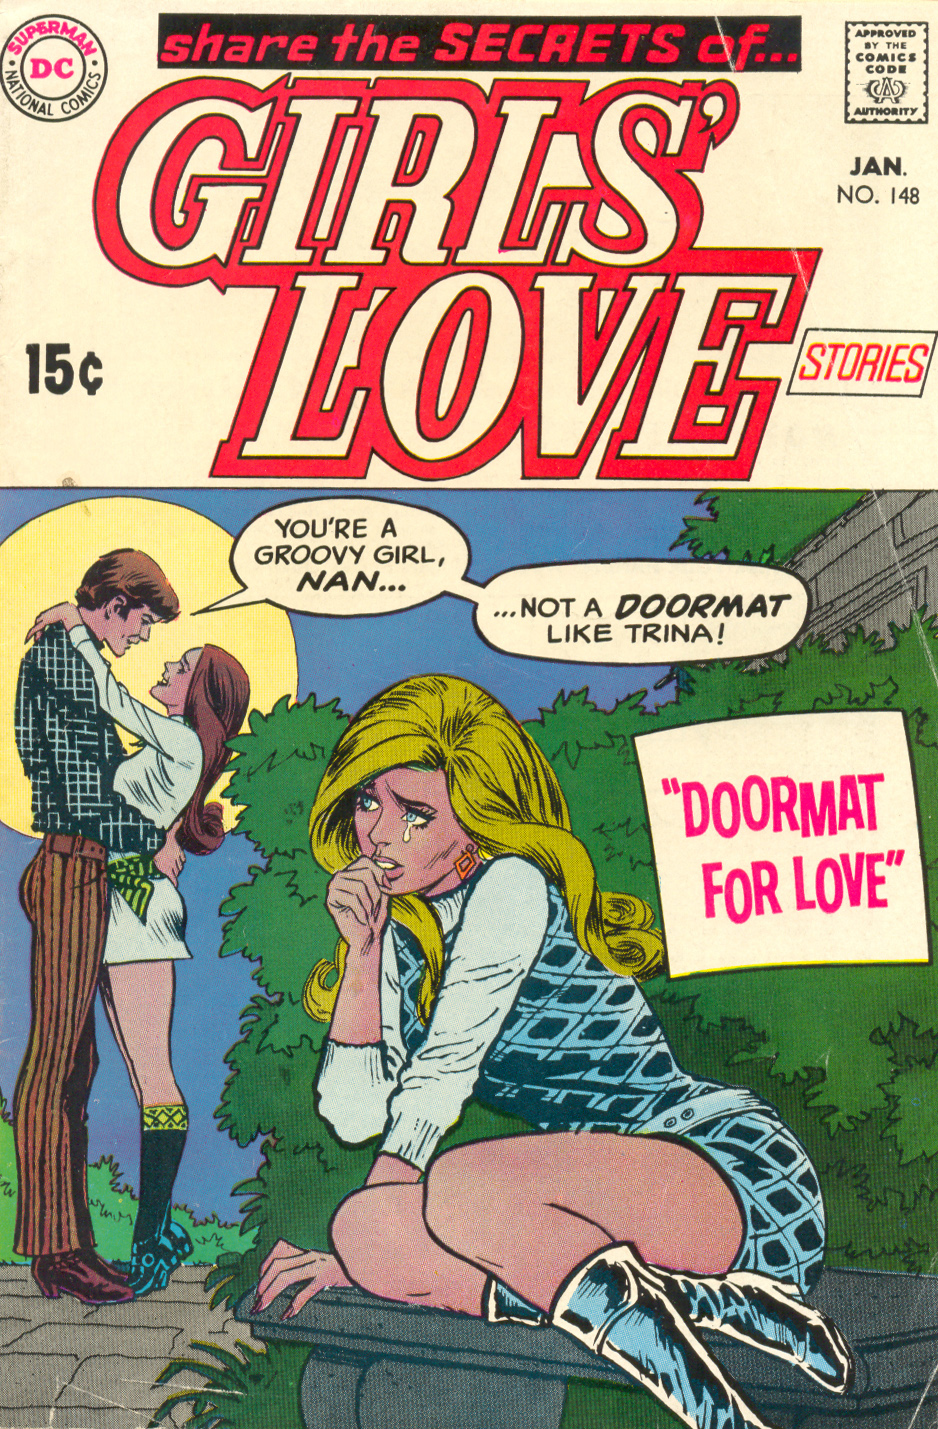 Gorgeous Nick Cardy cover! Though as you will see, a tad misleading!